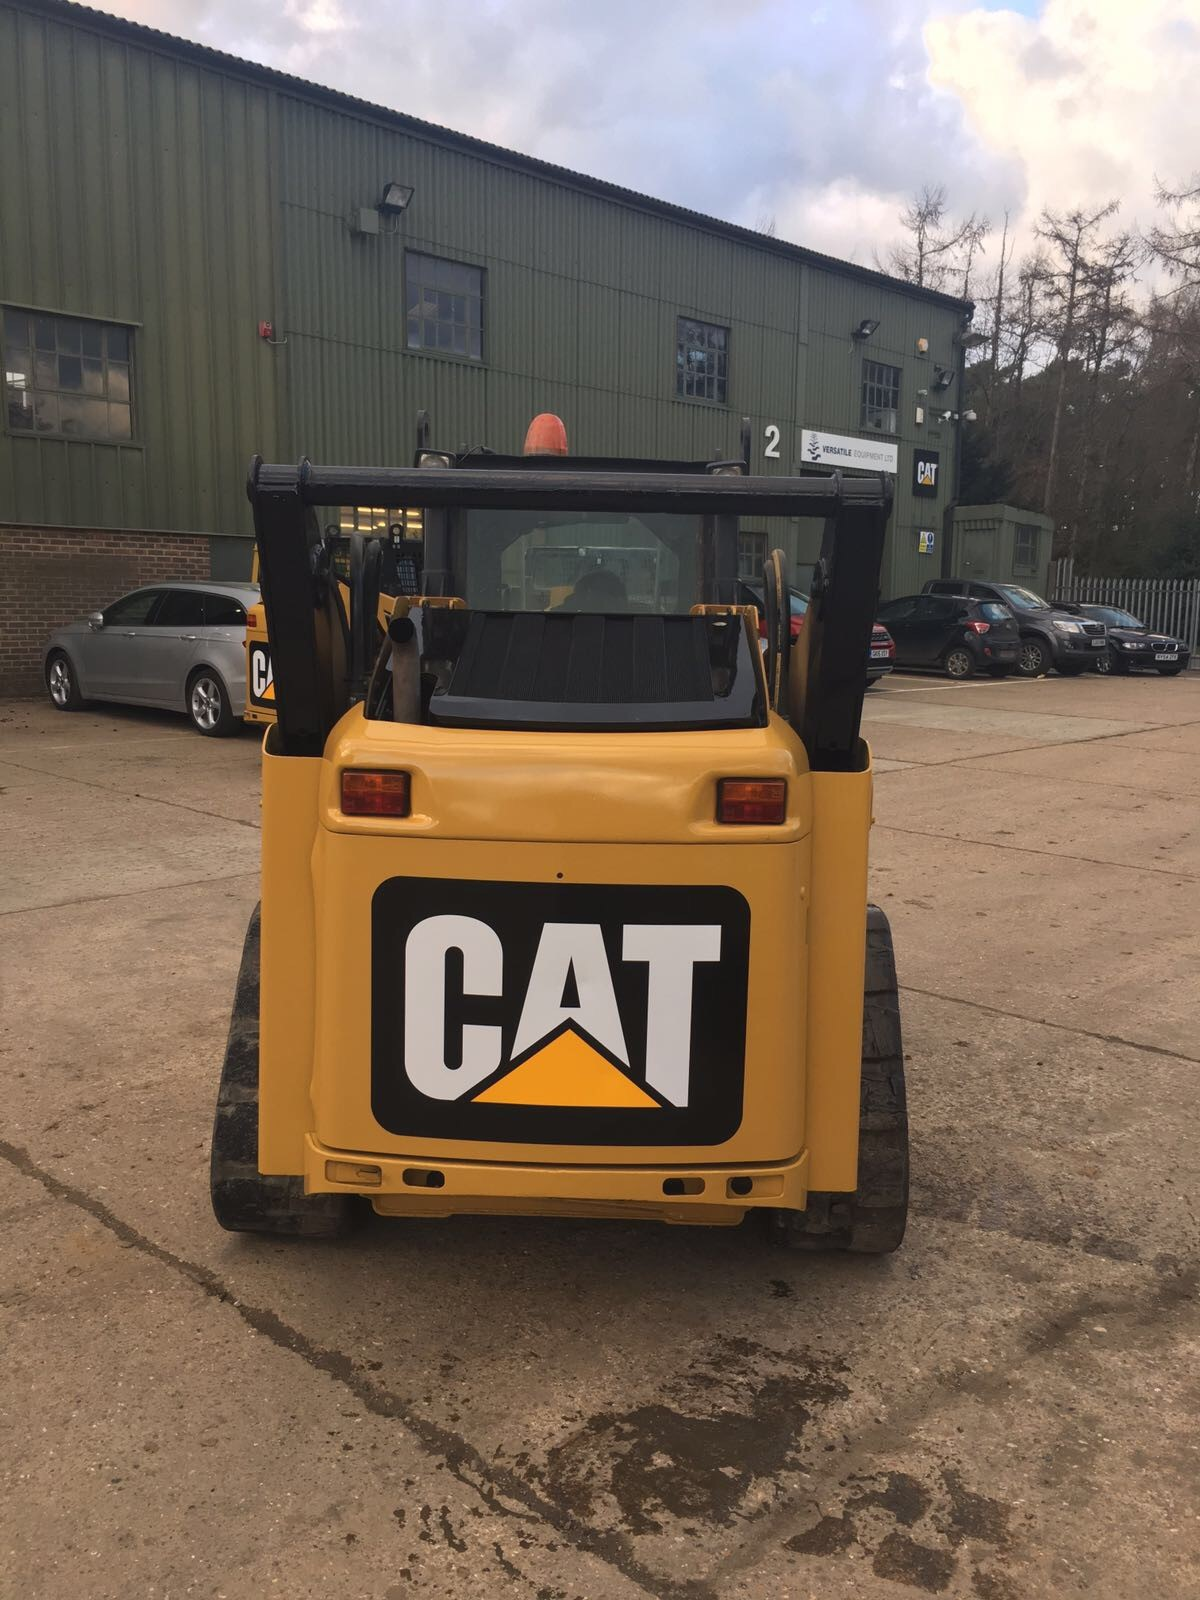 Wiring Diagram For Cat 259b3 28 Images Versatile Tractor 259 4 Equipment Used Tracked Loader Sale 259b At Cita